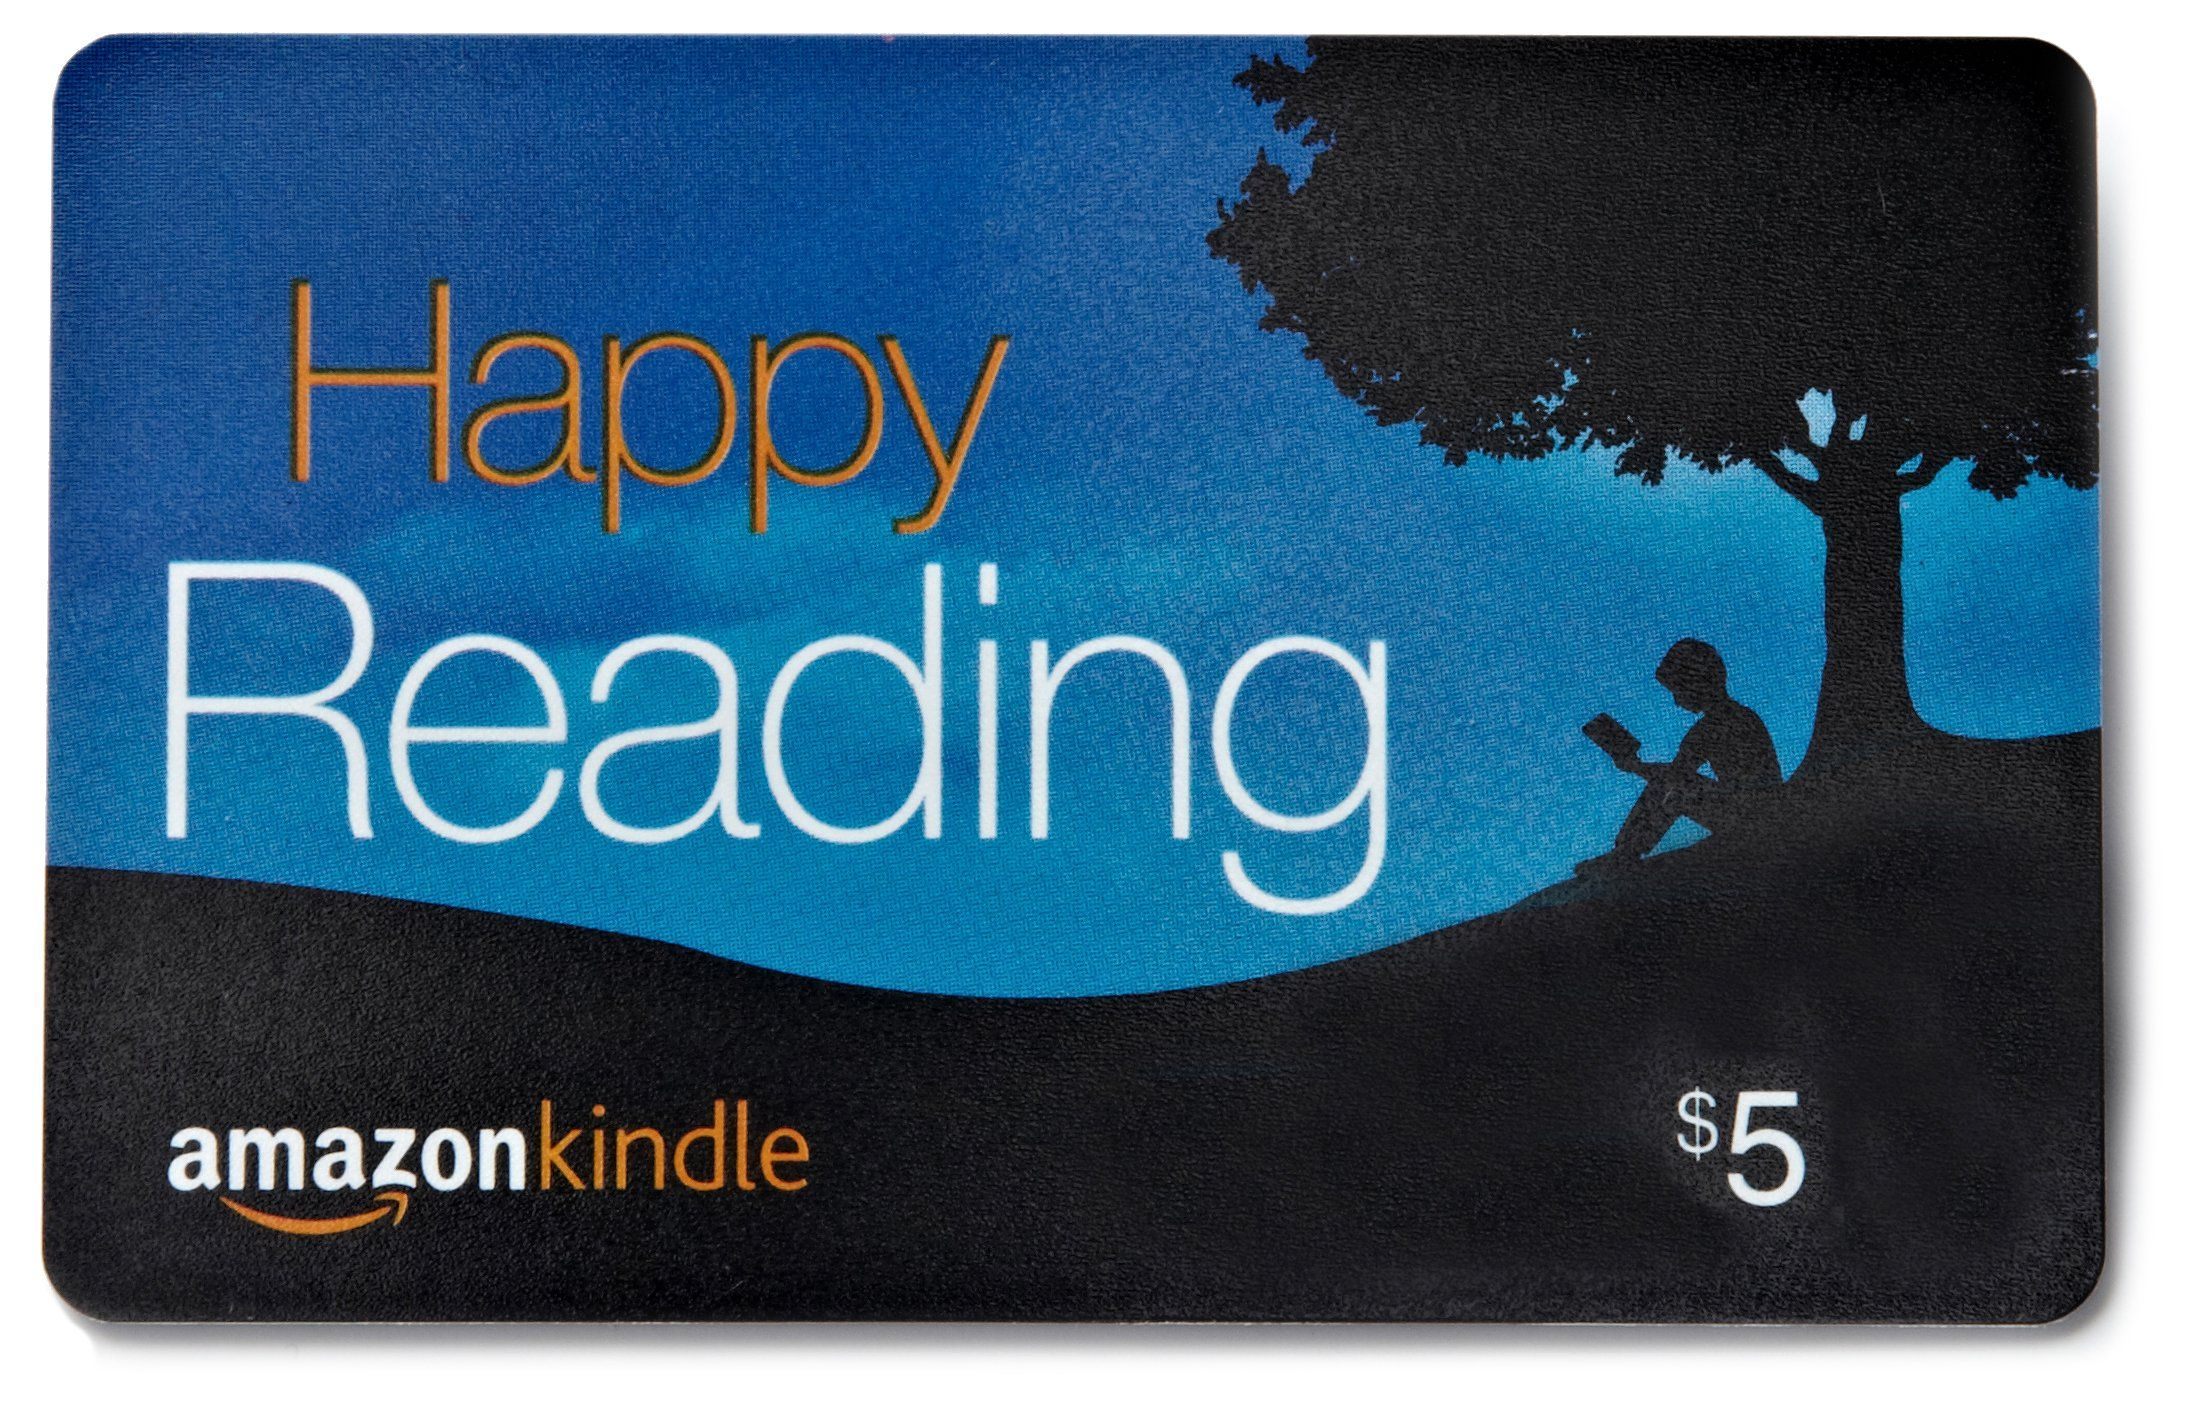 Amazon Com 5 Gift Cards Pack Of 50 Amazon Kindle Card Design Find Out More About The Great Product At The Image Link Gift Card Card Design Amazon Gifts